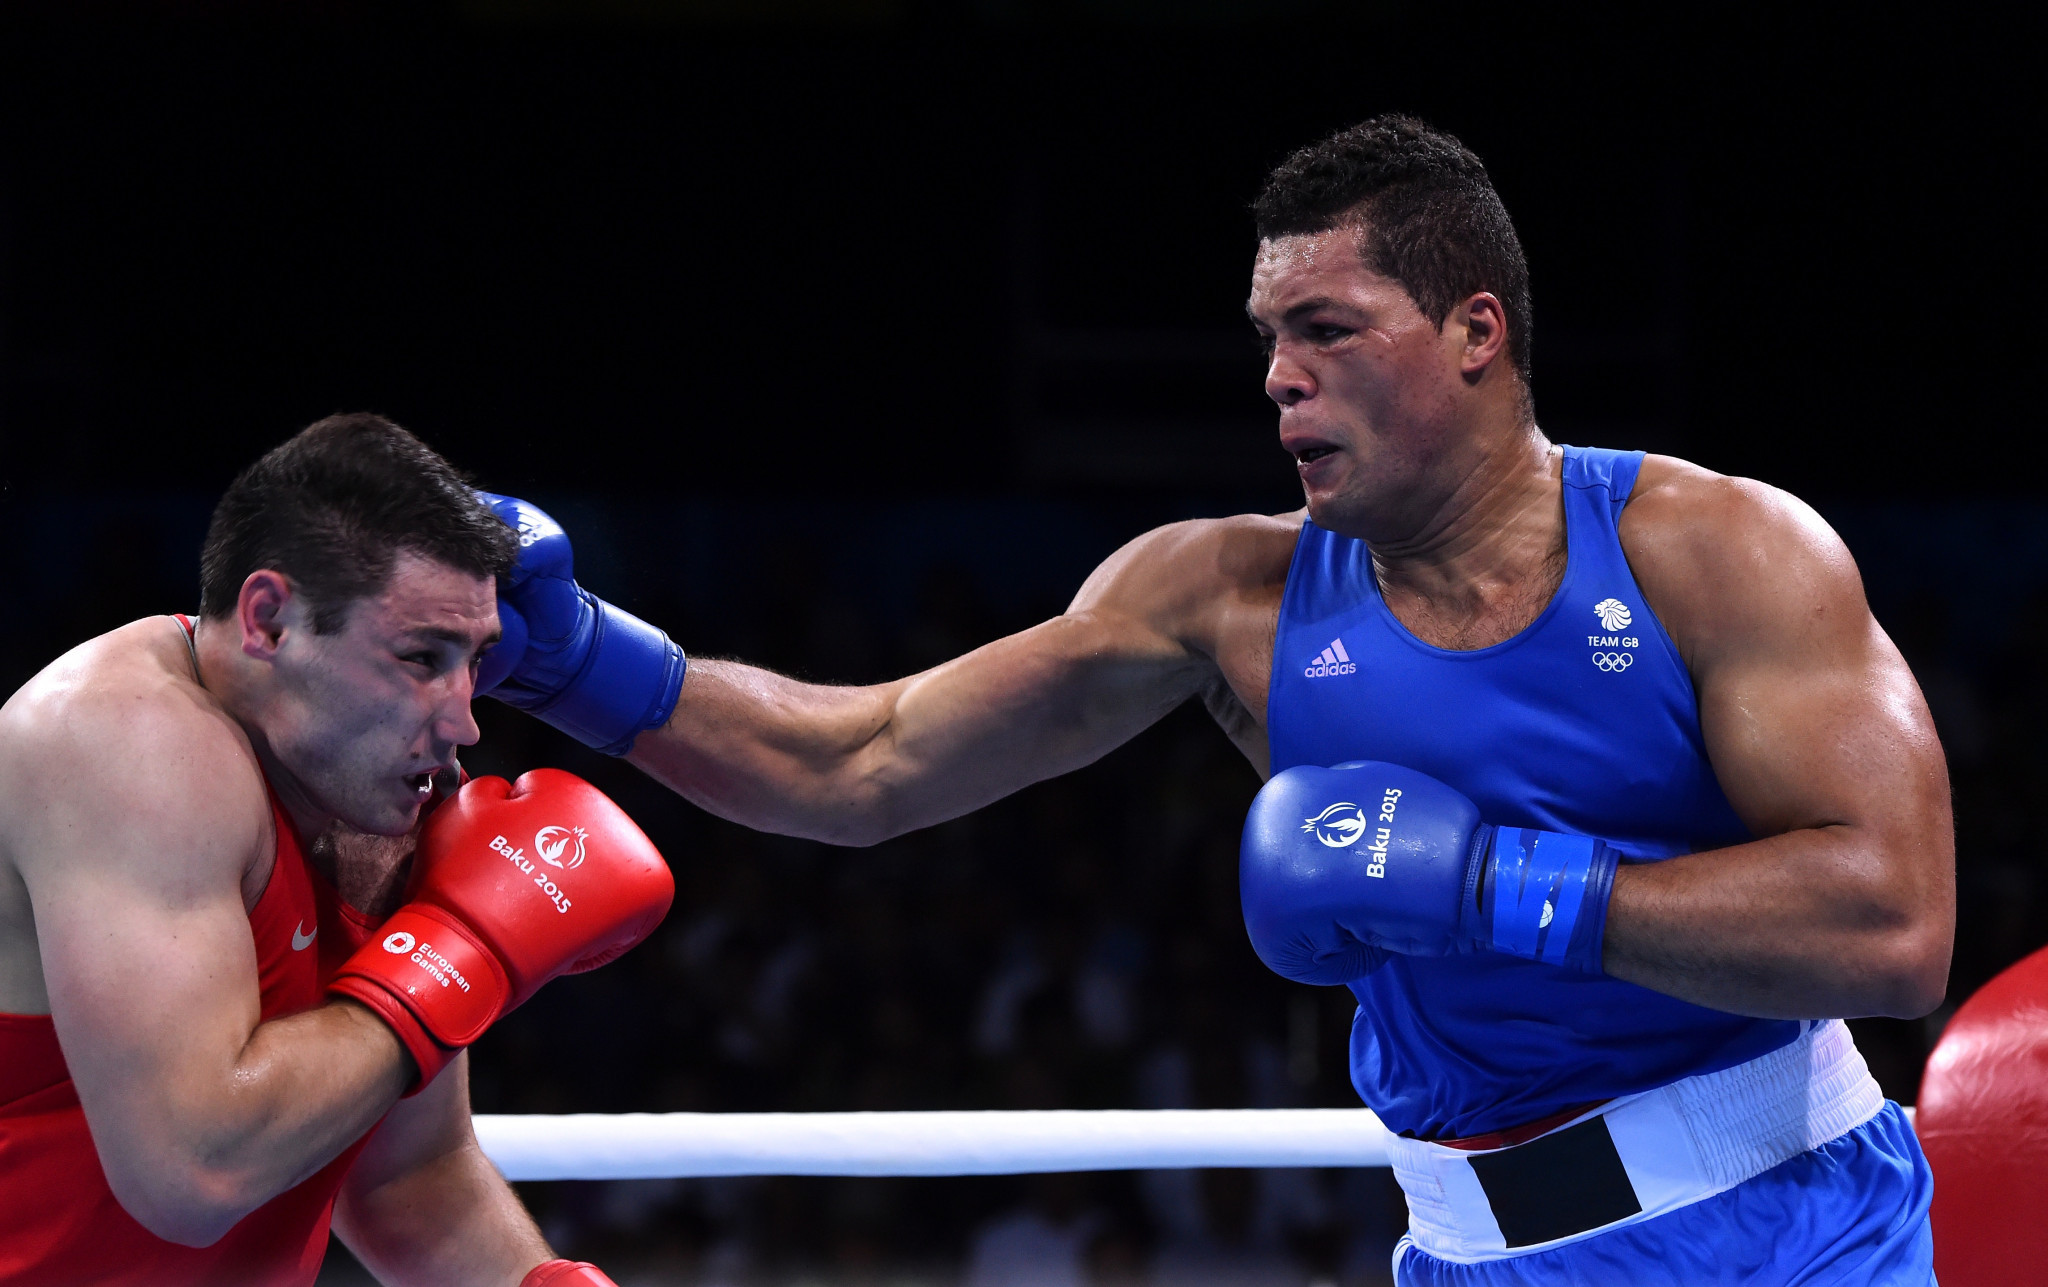 Scores will be displayed at the end of each round during the boxing tournament at Tokyo 2020, it has been announced by the IOC Boxing Task Force ©Getty Images